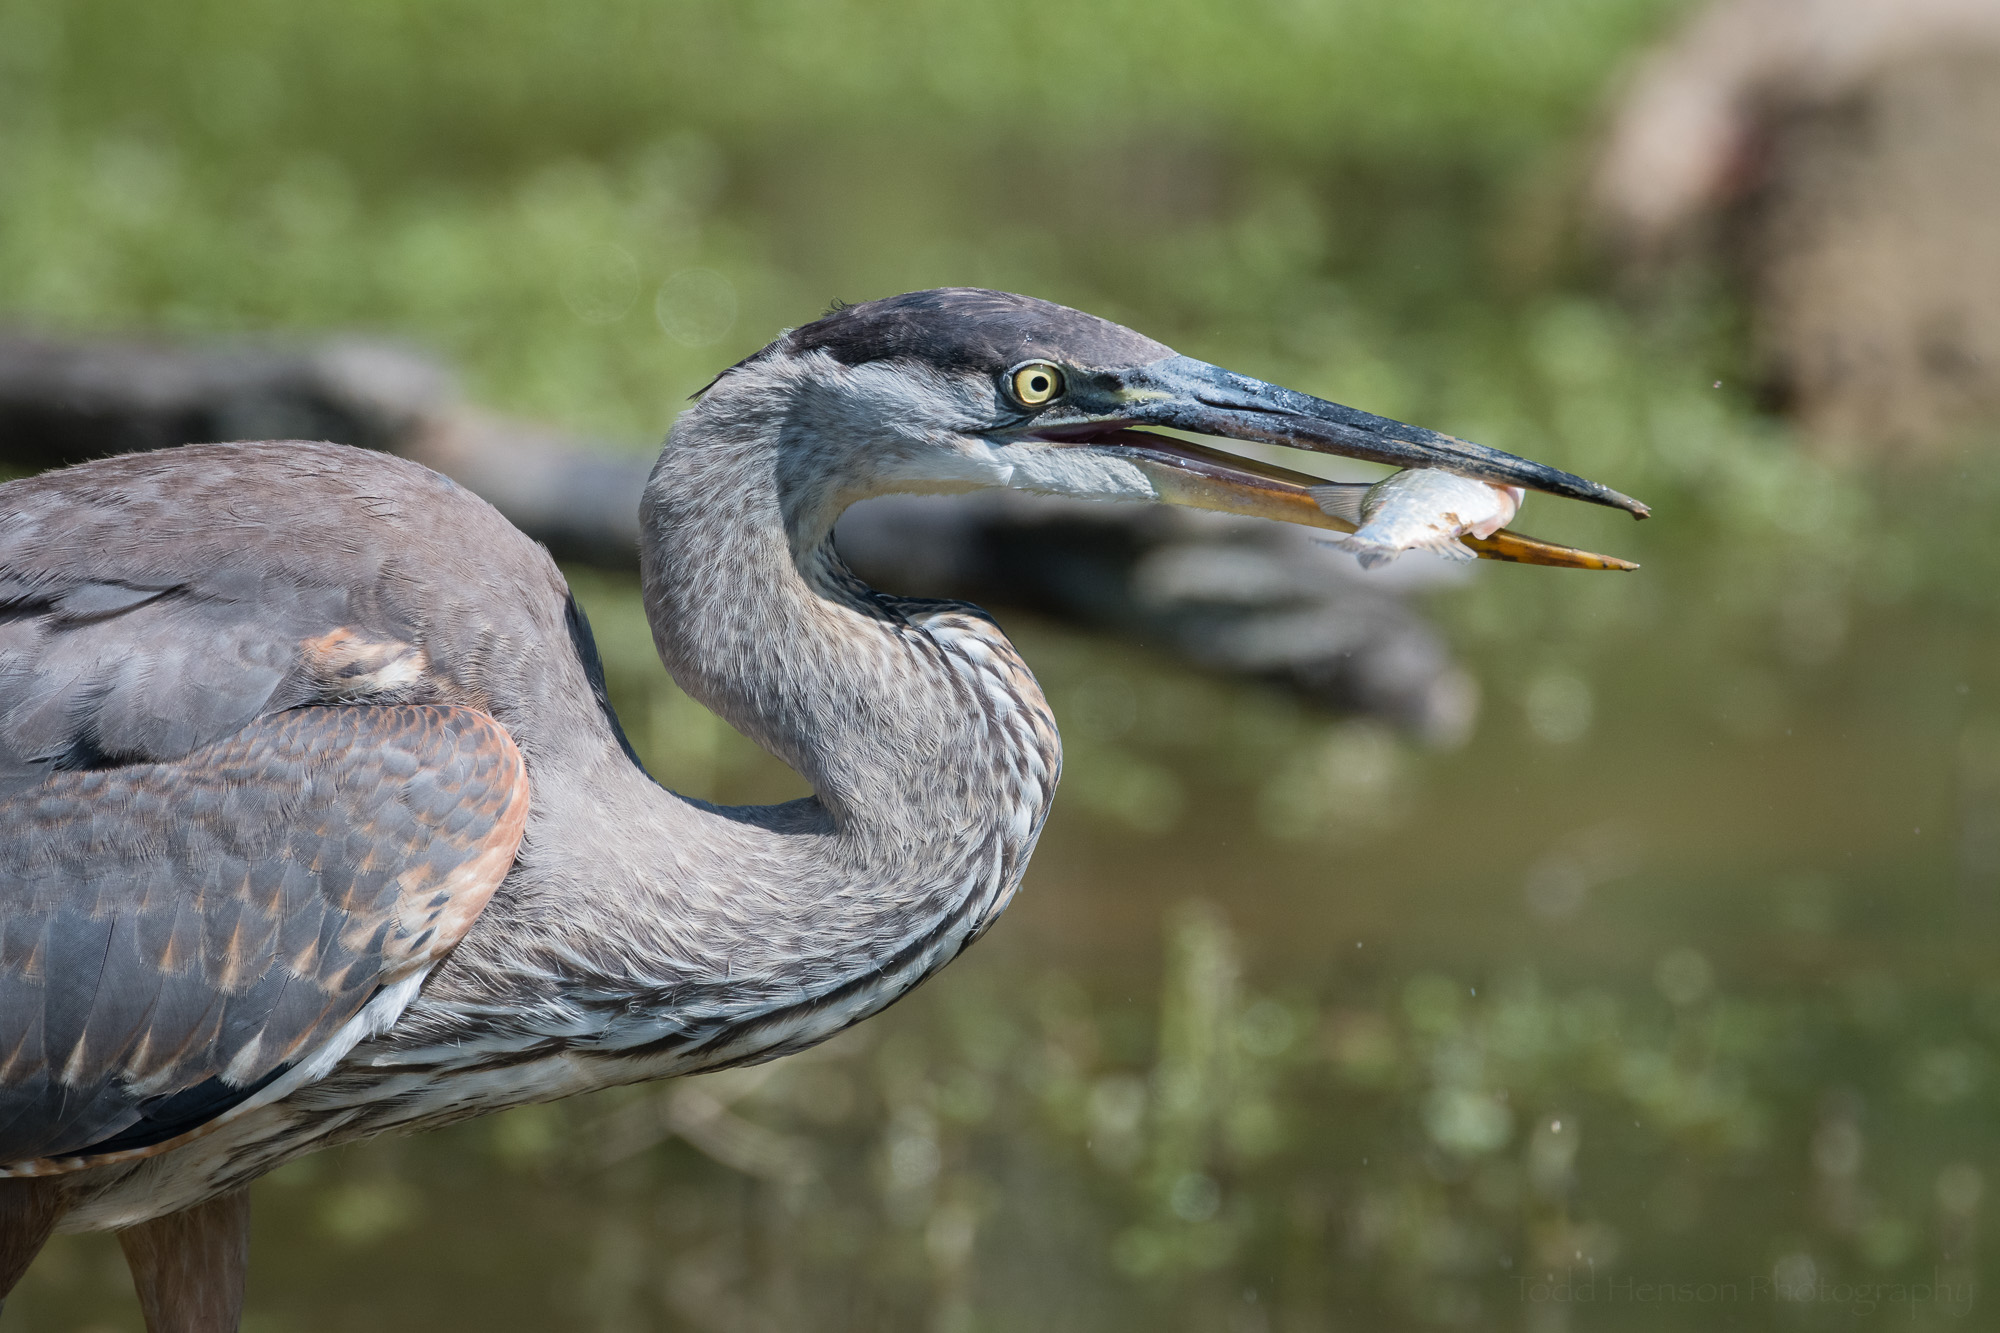 The Great Blue Herons eye is now fully open as it holds the fish in its beak.